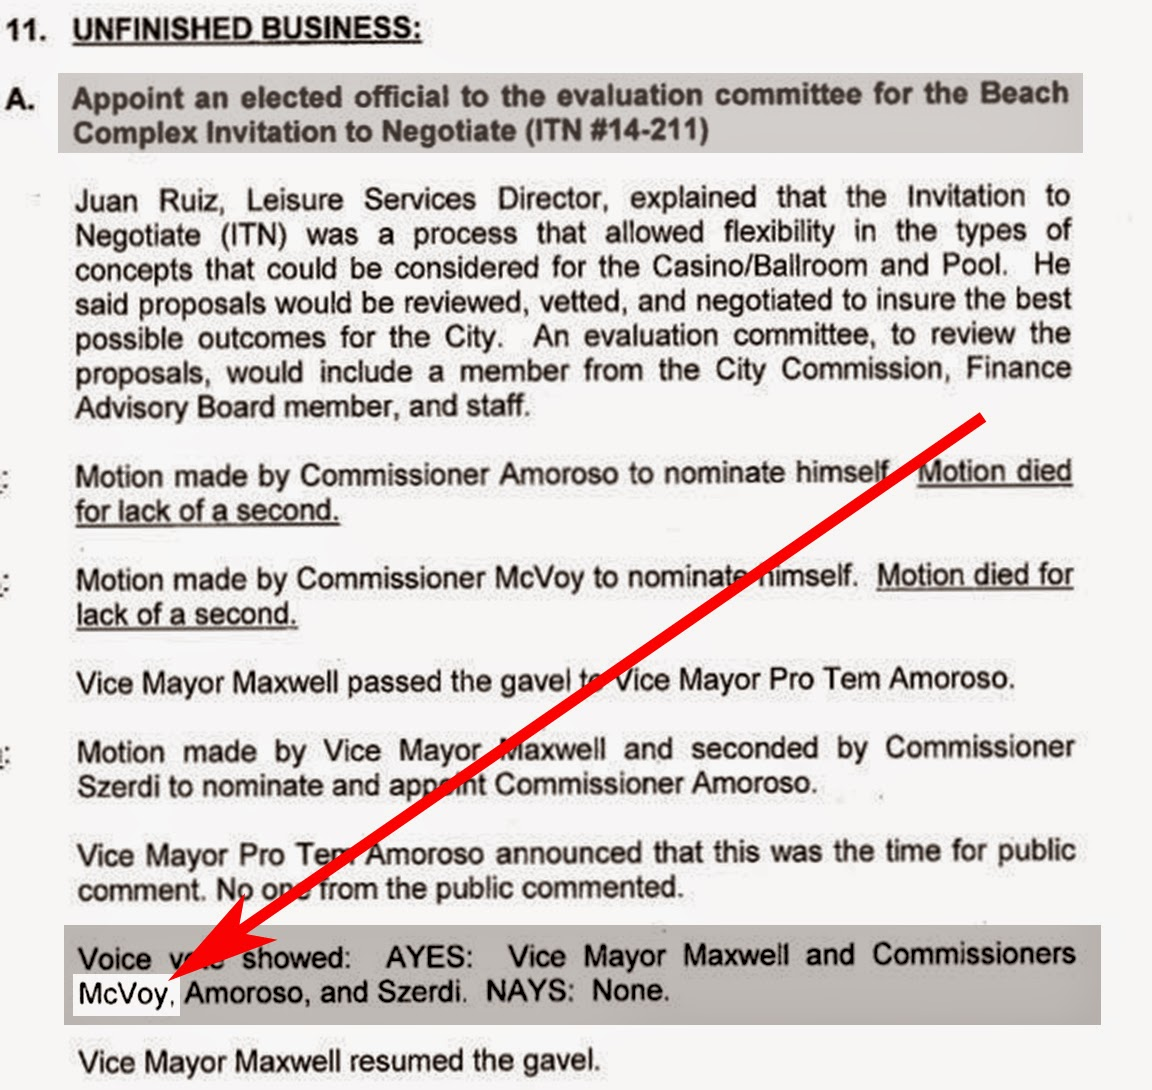 and one more thing commissioner mcvoy who just happened to chance on the meeting mentioned in the letter he voted for the secret itn process